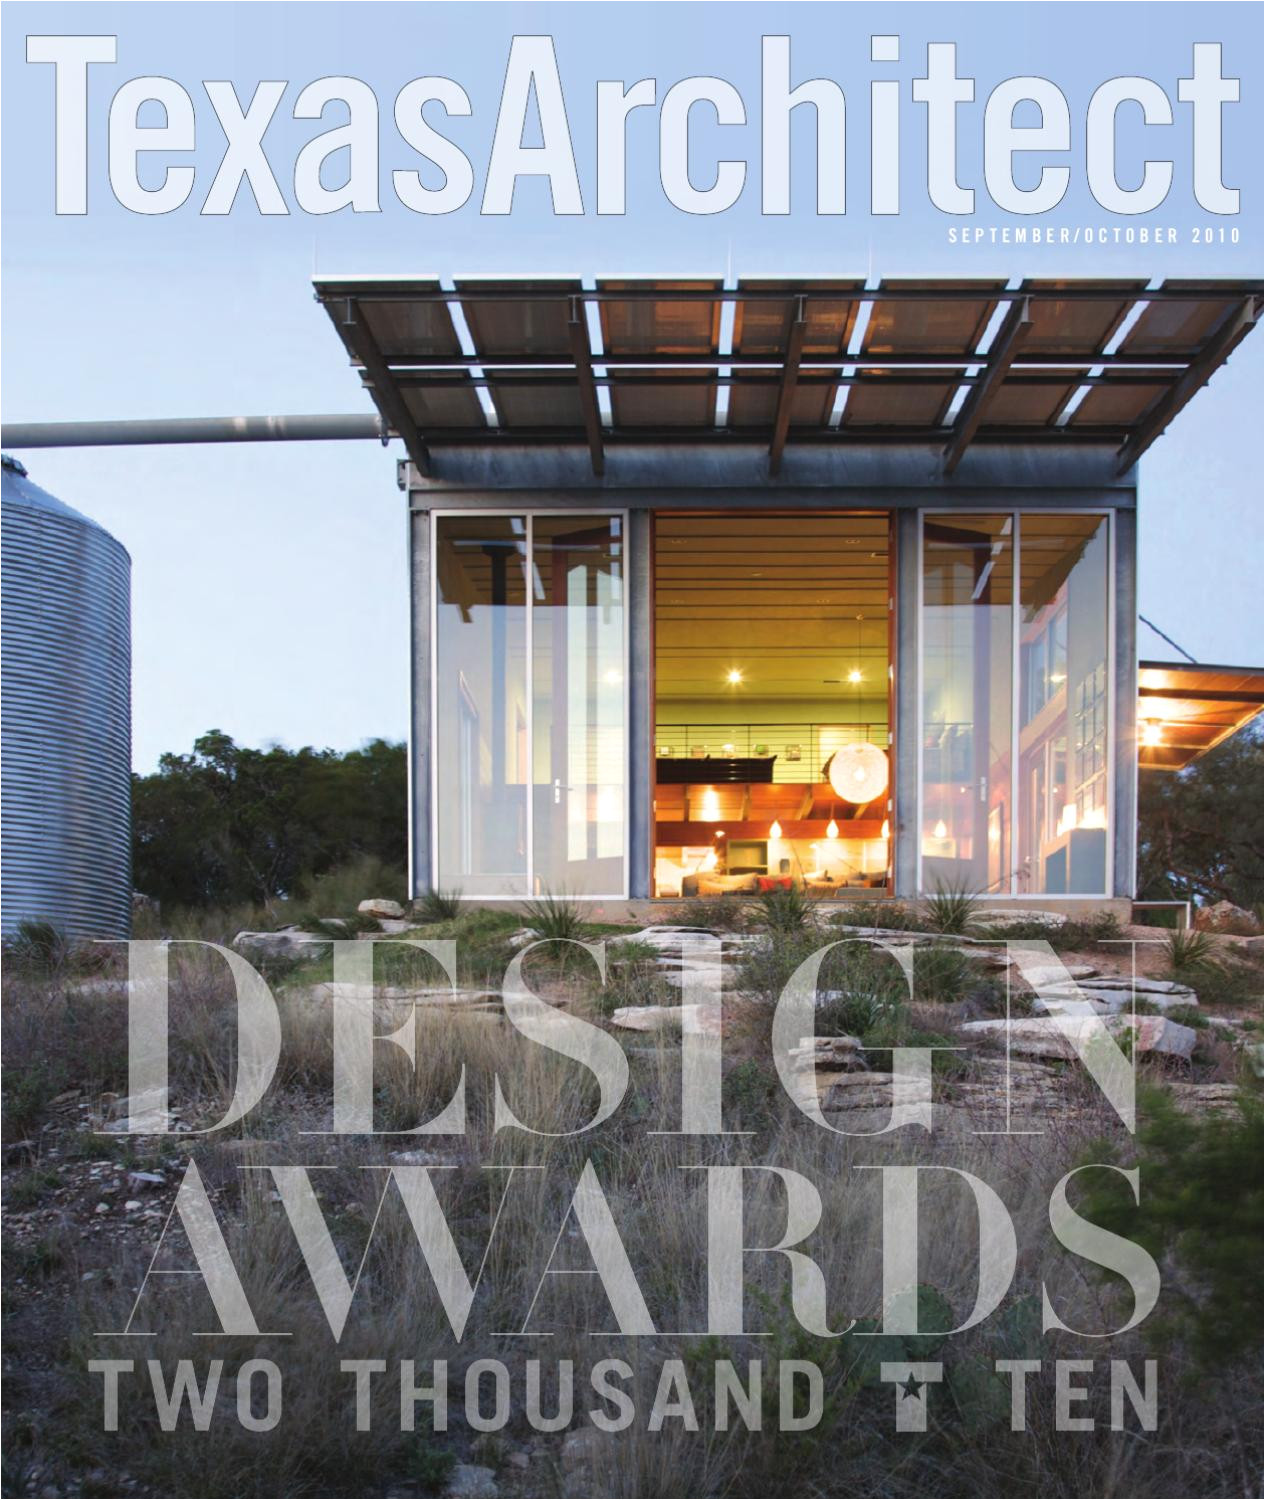 texas architect sept oct 2010 design awards by texas society of architects issuu